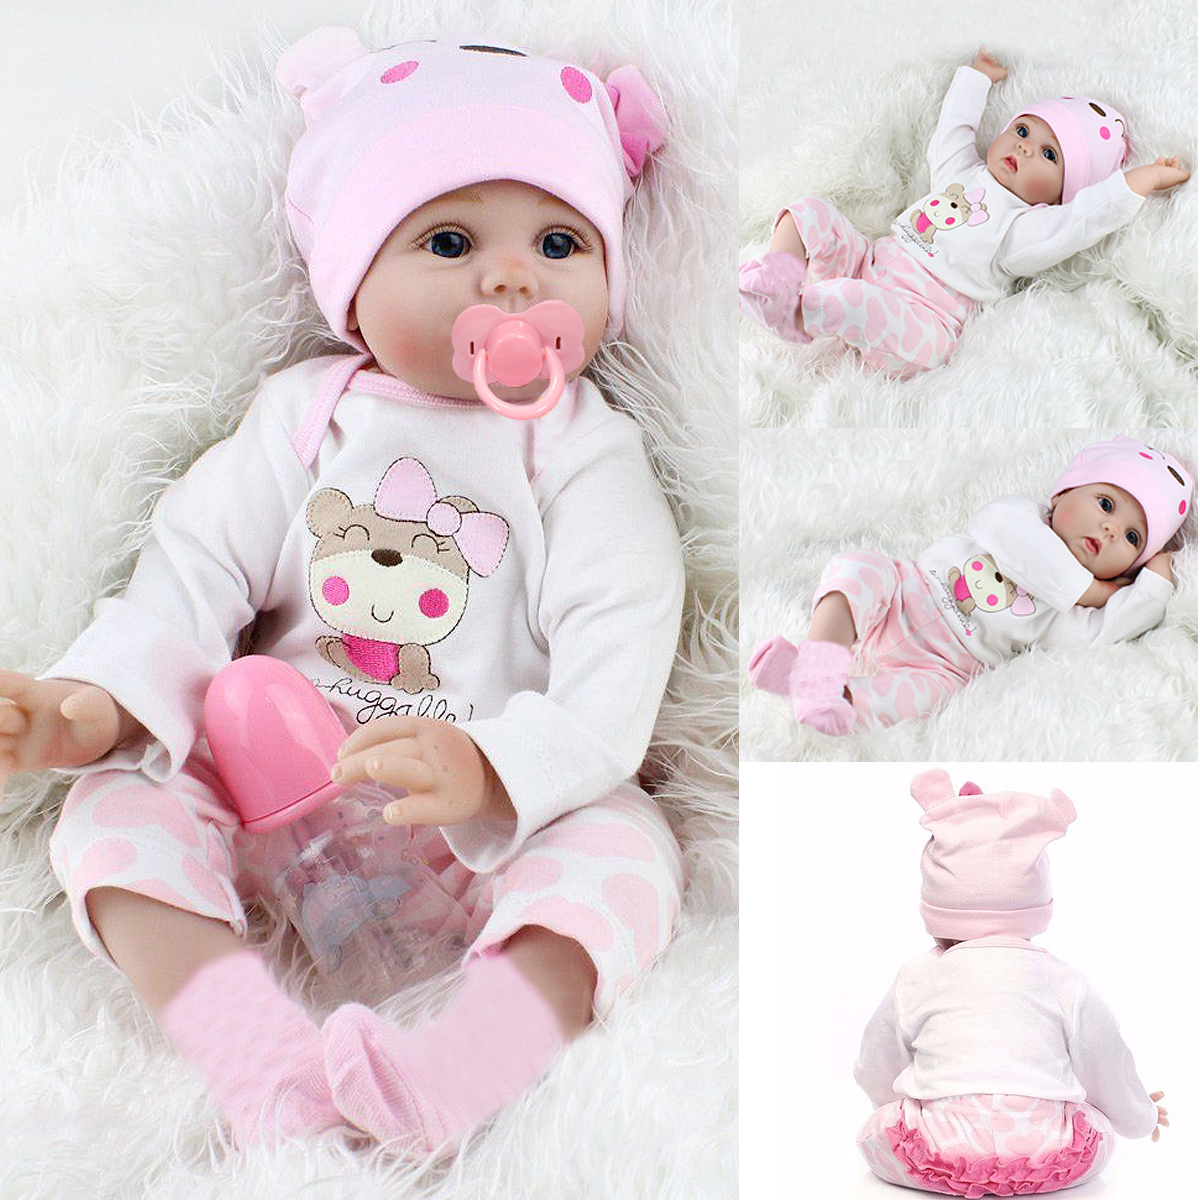 High Quality 22 Realistic Lifelike Realike Alive Newborn Reborn Babies Silicone Vinyl Reborn Baby Girl Dolls Handmade Weighted Alive Doll For Toddler Gifts Walmart Com Walmart Com